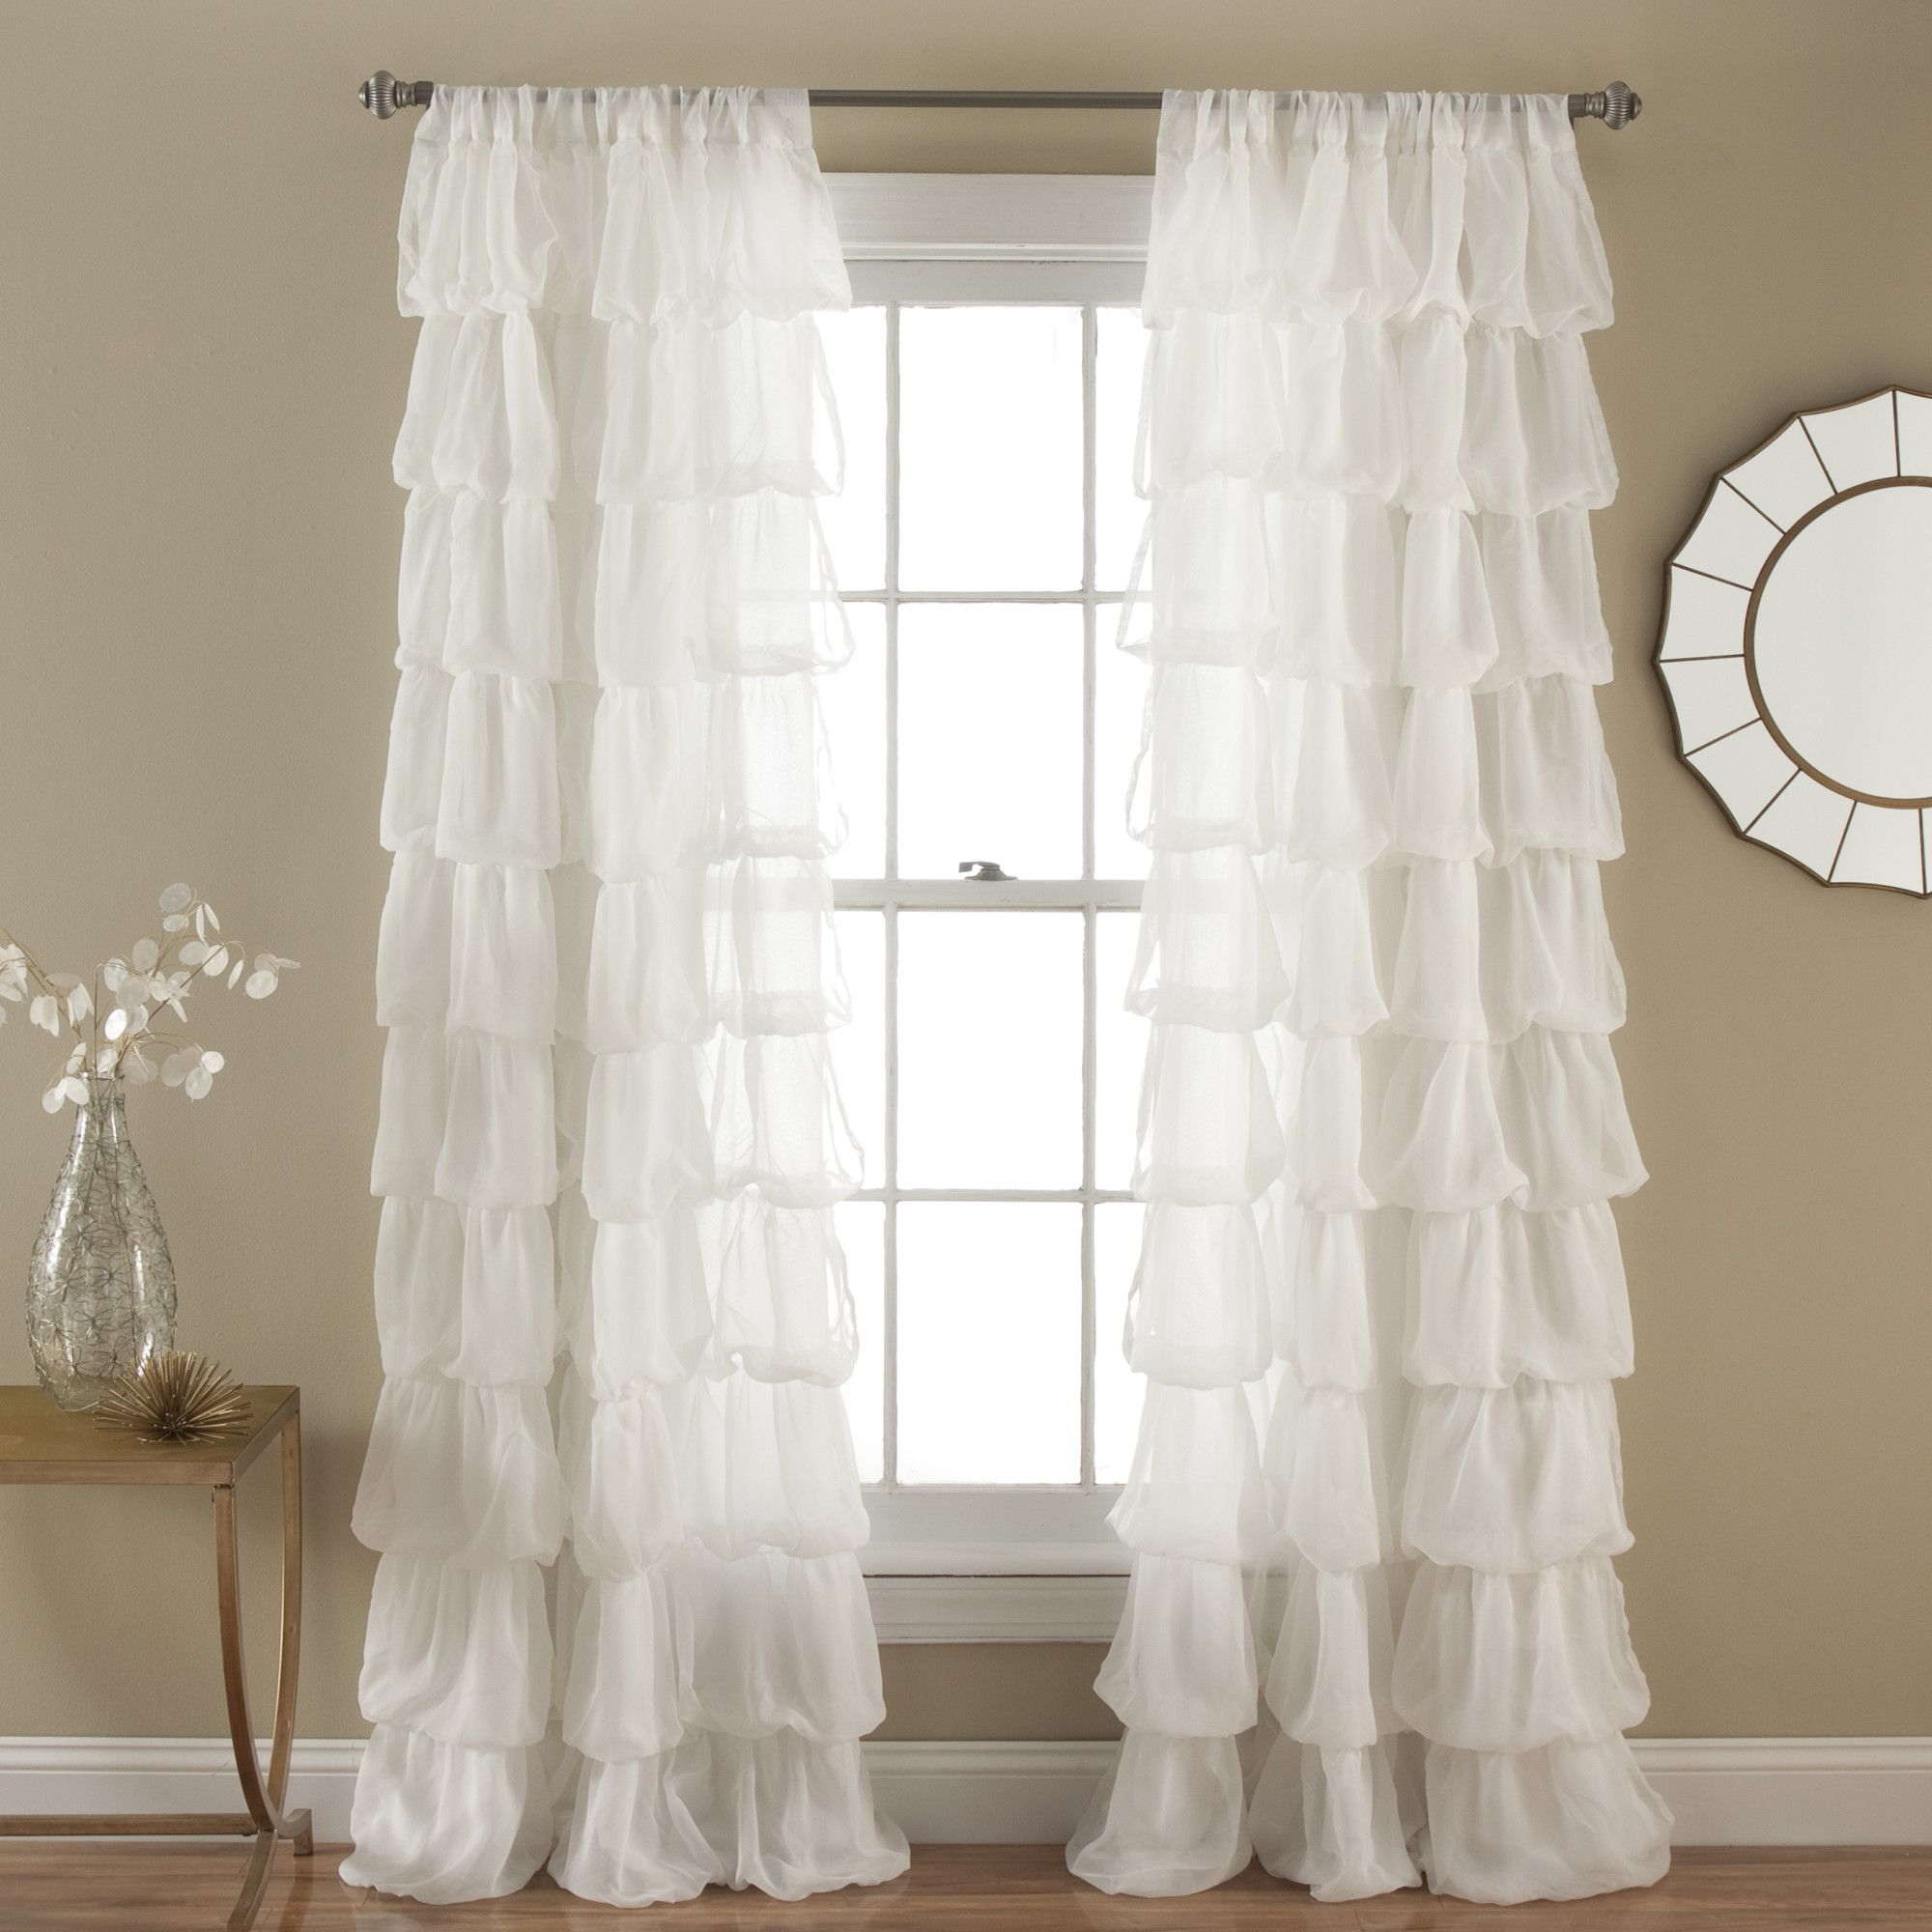 Triangle window coverings  customer image zoomed  drapes window treatments pillows accents and